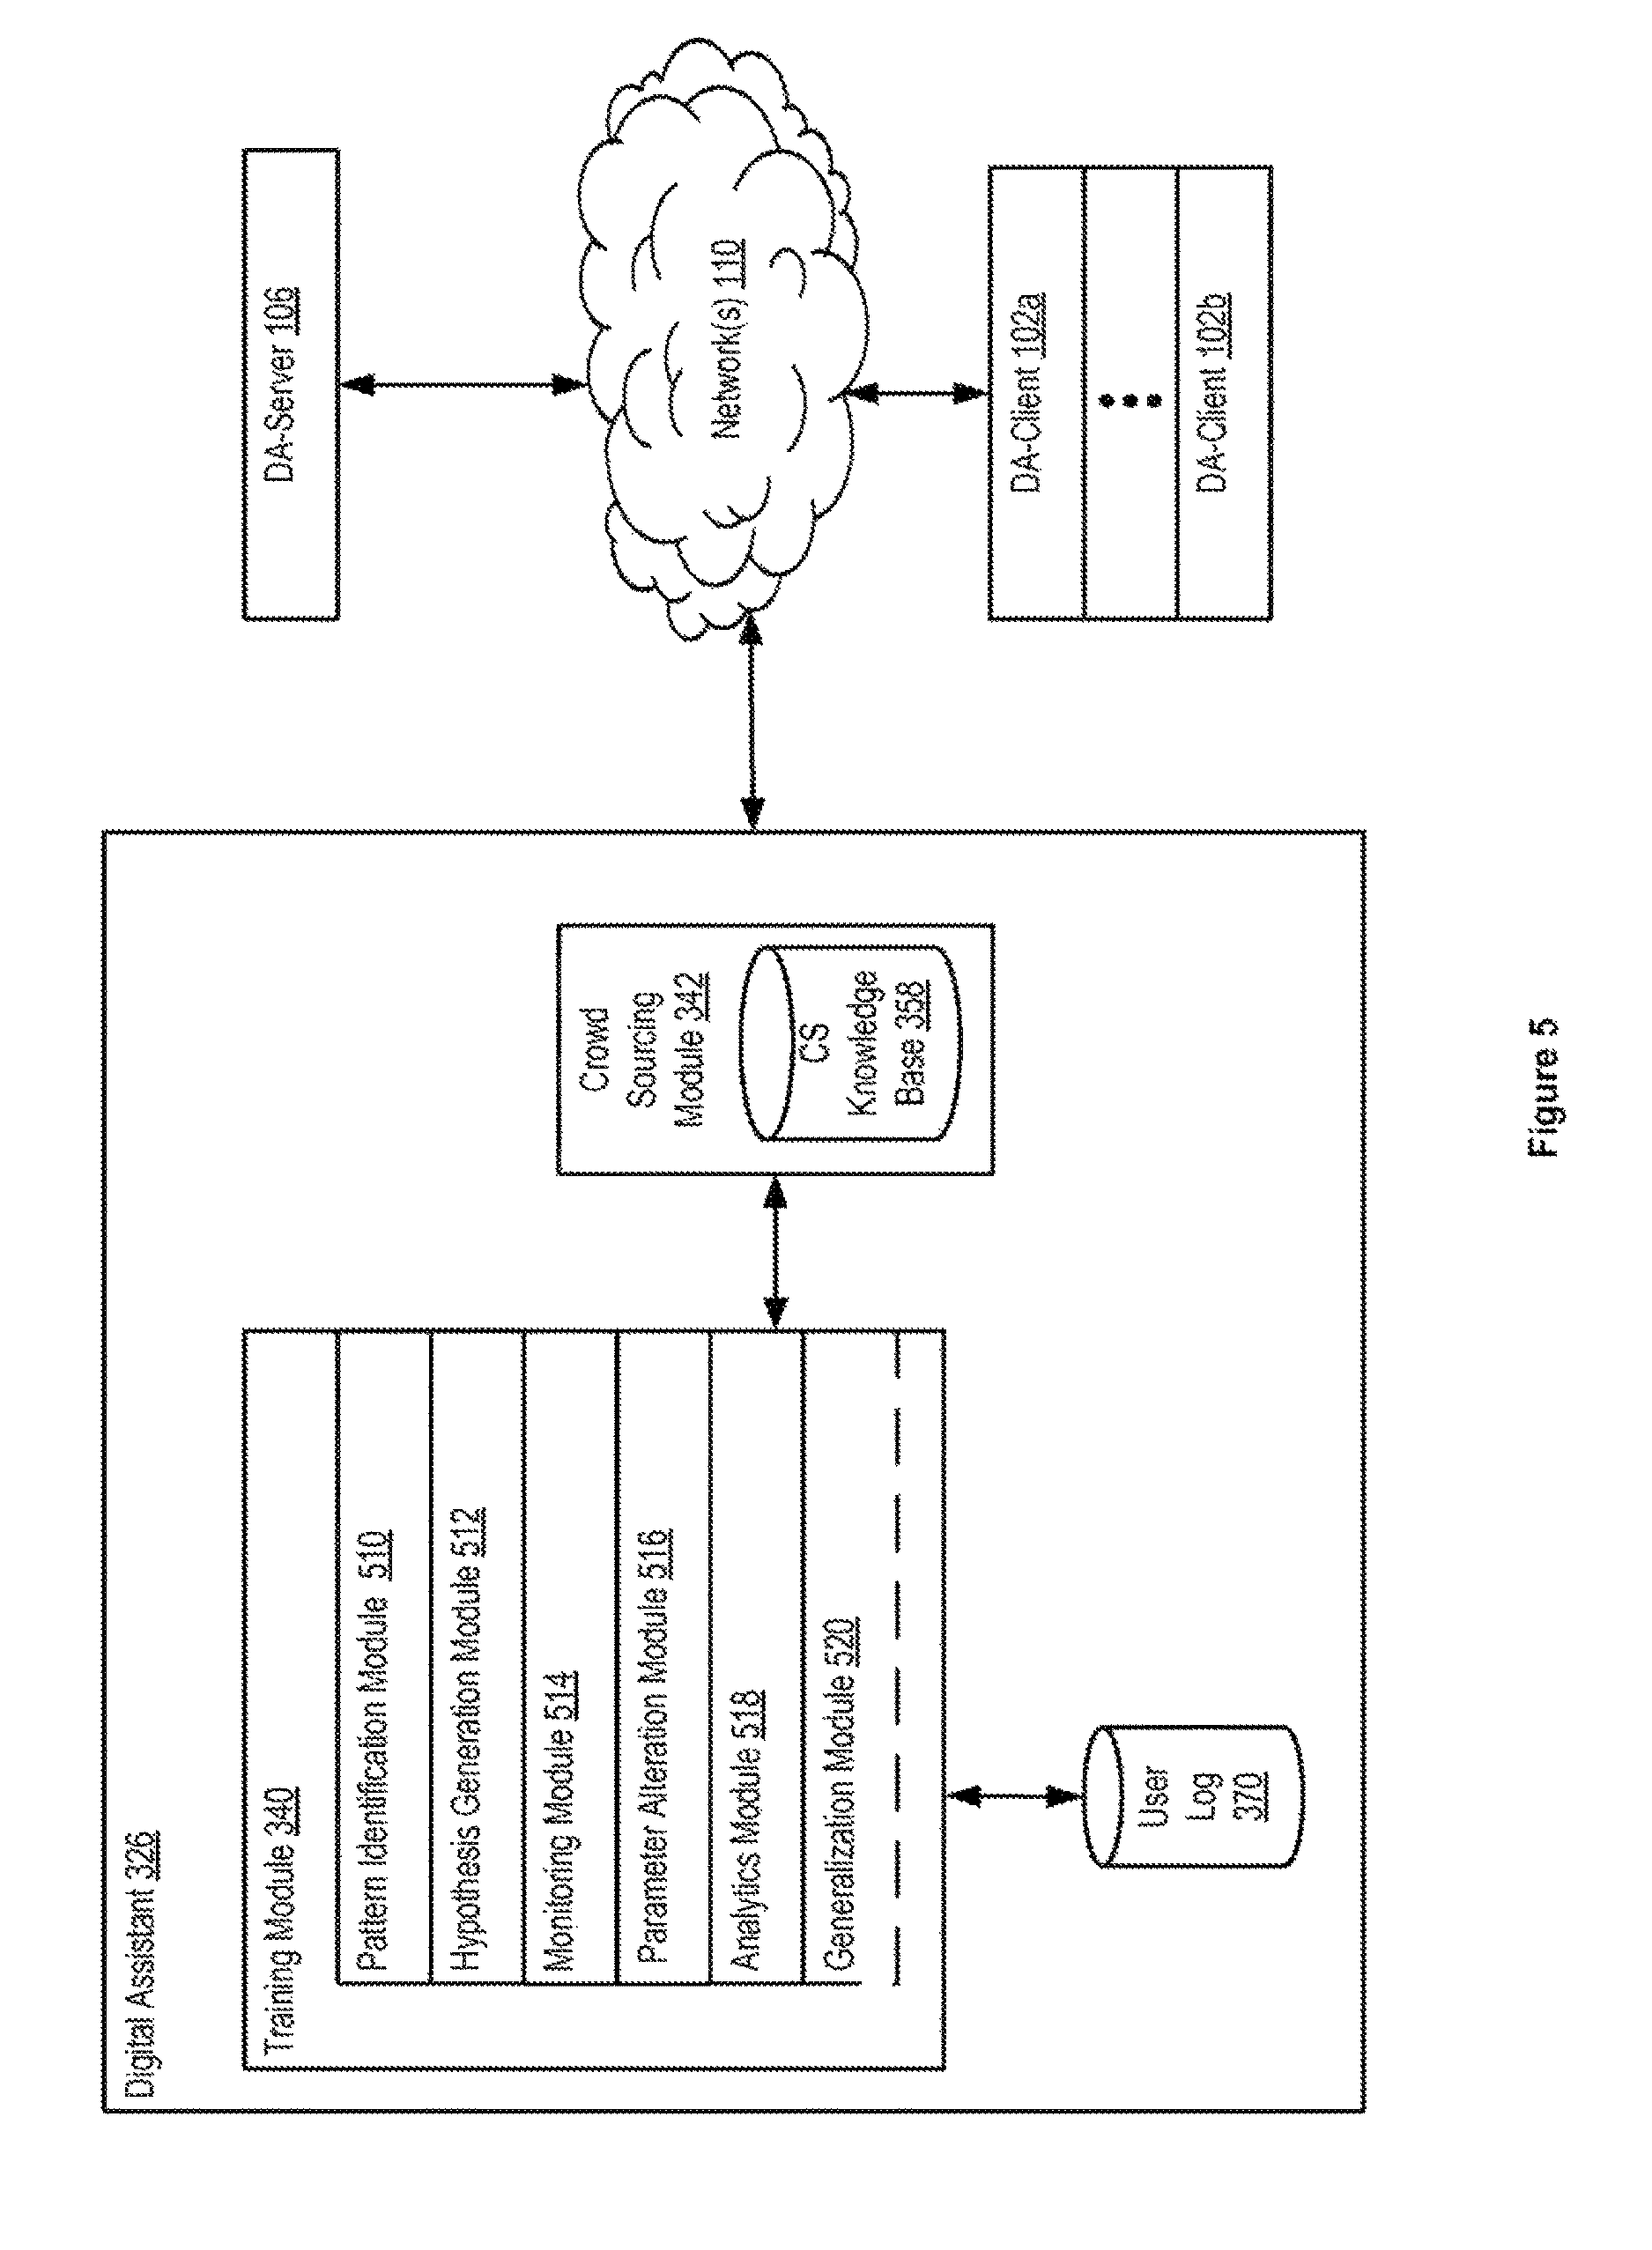 US9922642B2 - Training an at least partial voice command